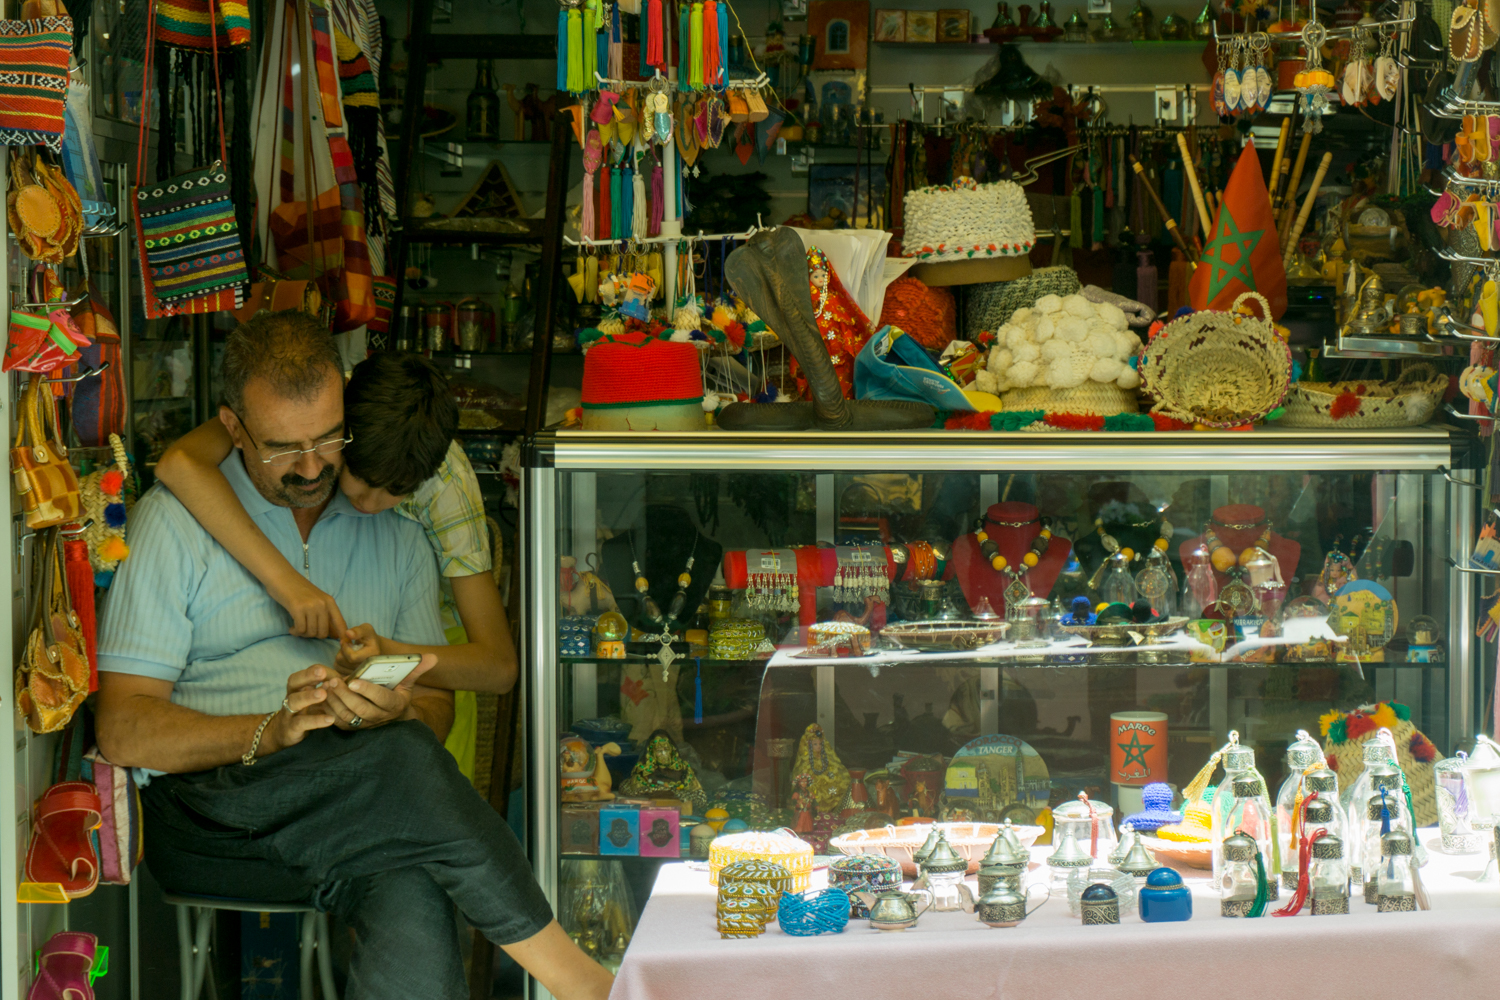 A shopkeeper and his son in Tangier's medina